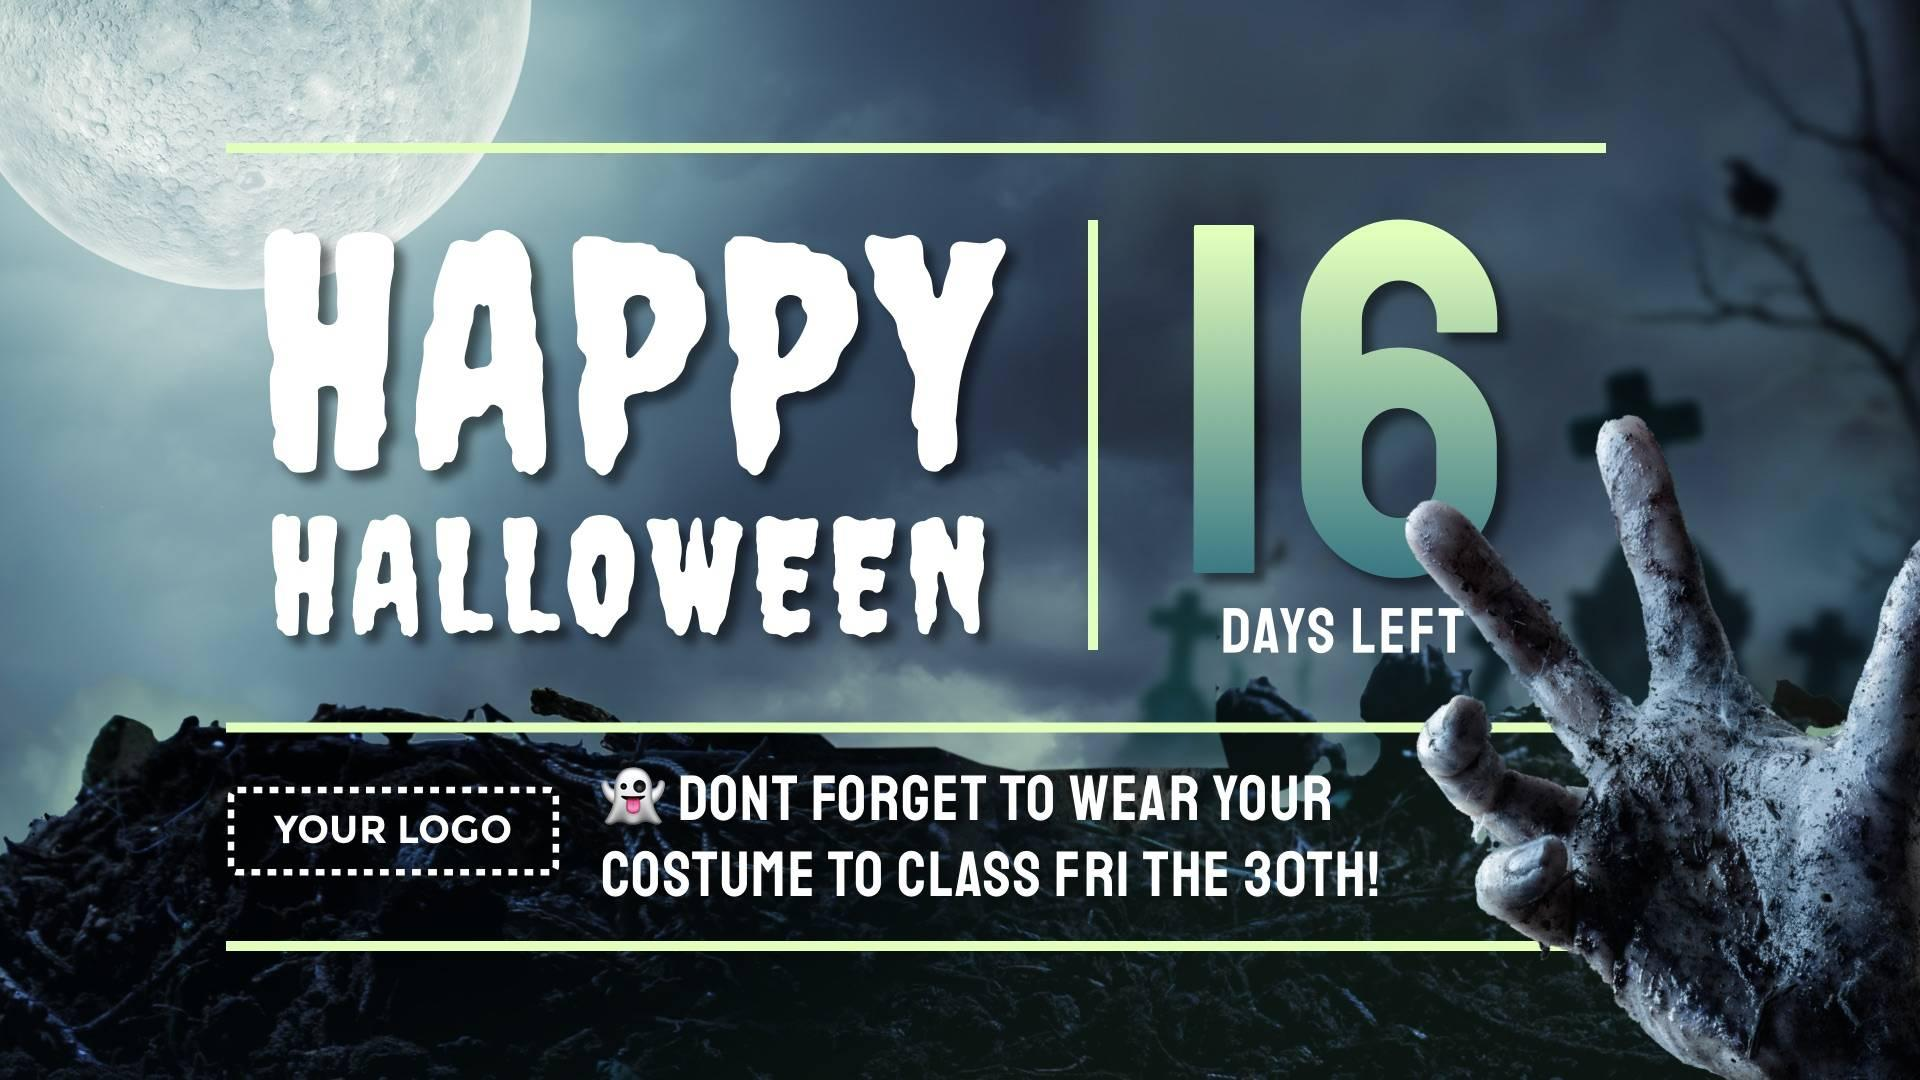 Halloween Surprise Countdown (Contains Audio!) Digital Signage Template